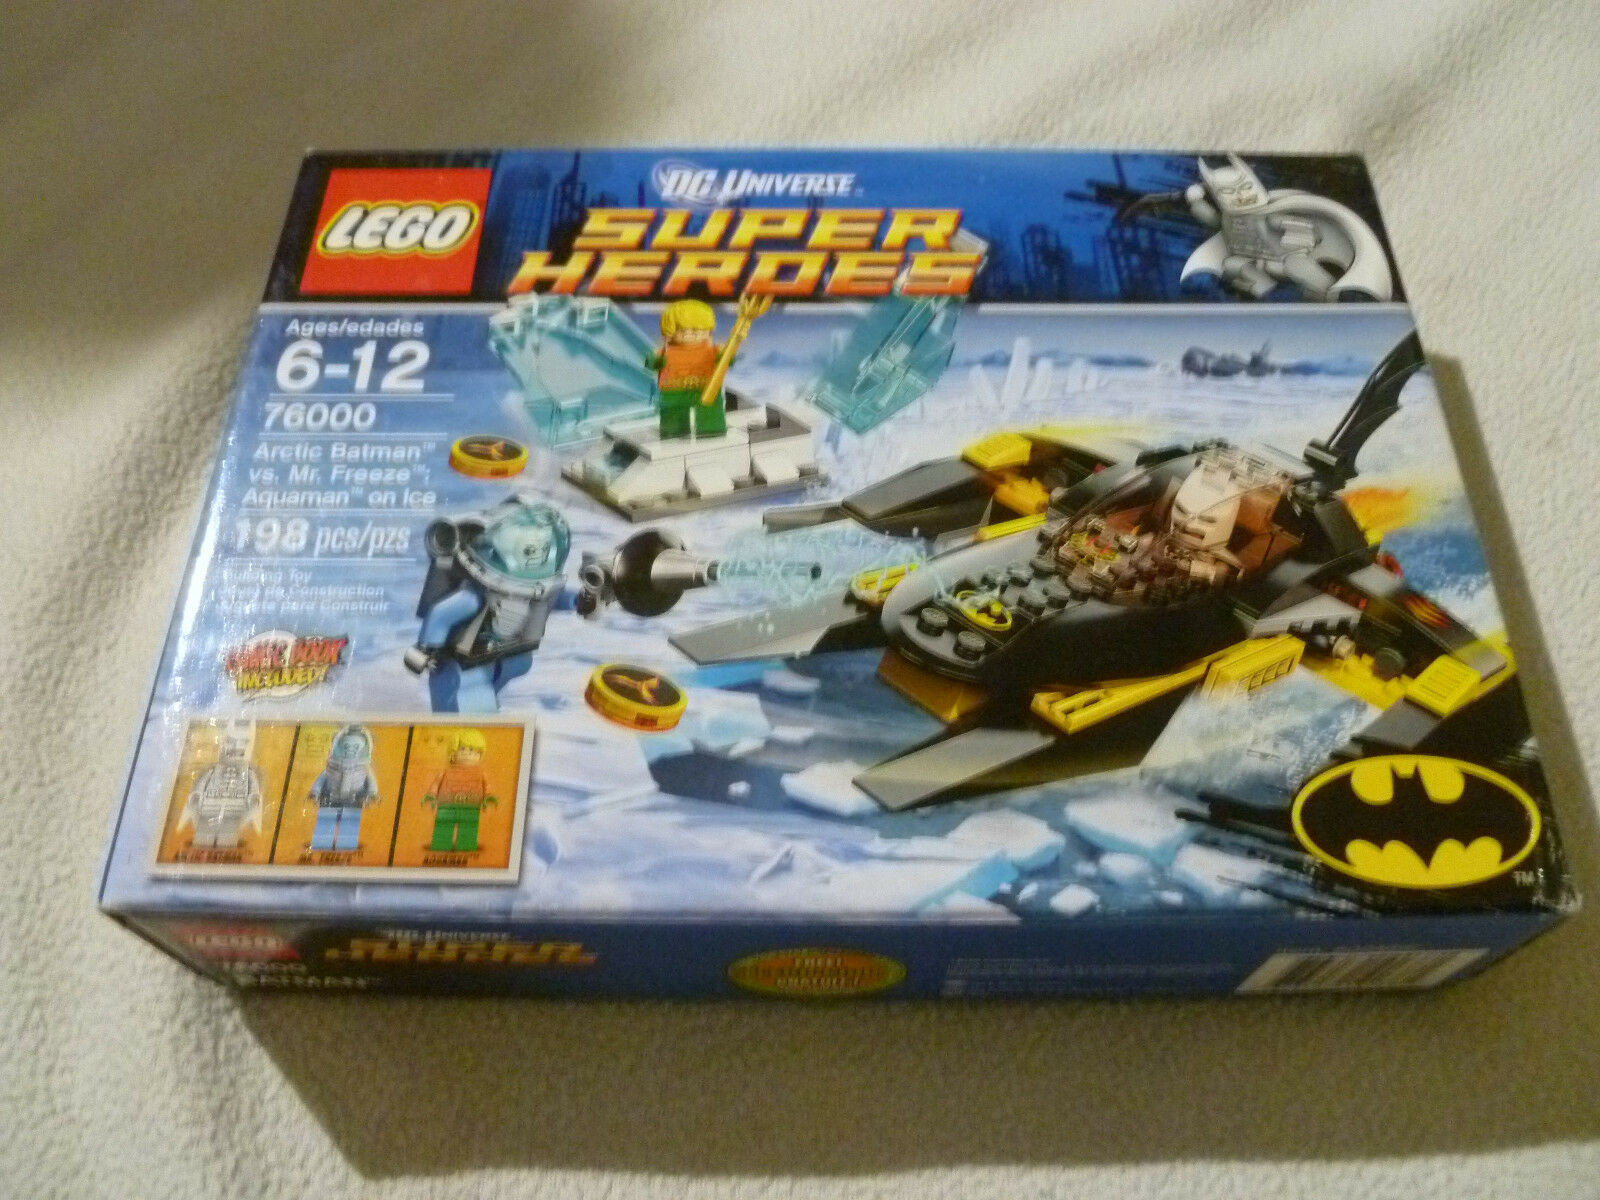 NEW LEGO DC UNIVERSE SUPER HEROES 76000 ARCTIC BATMAN VS MR FREEZE AQUAMAN ICE >